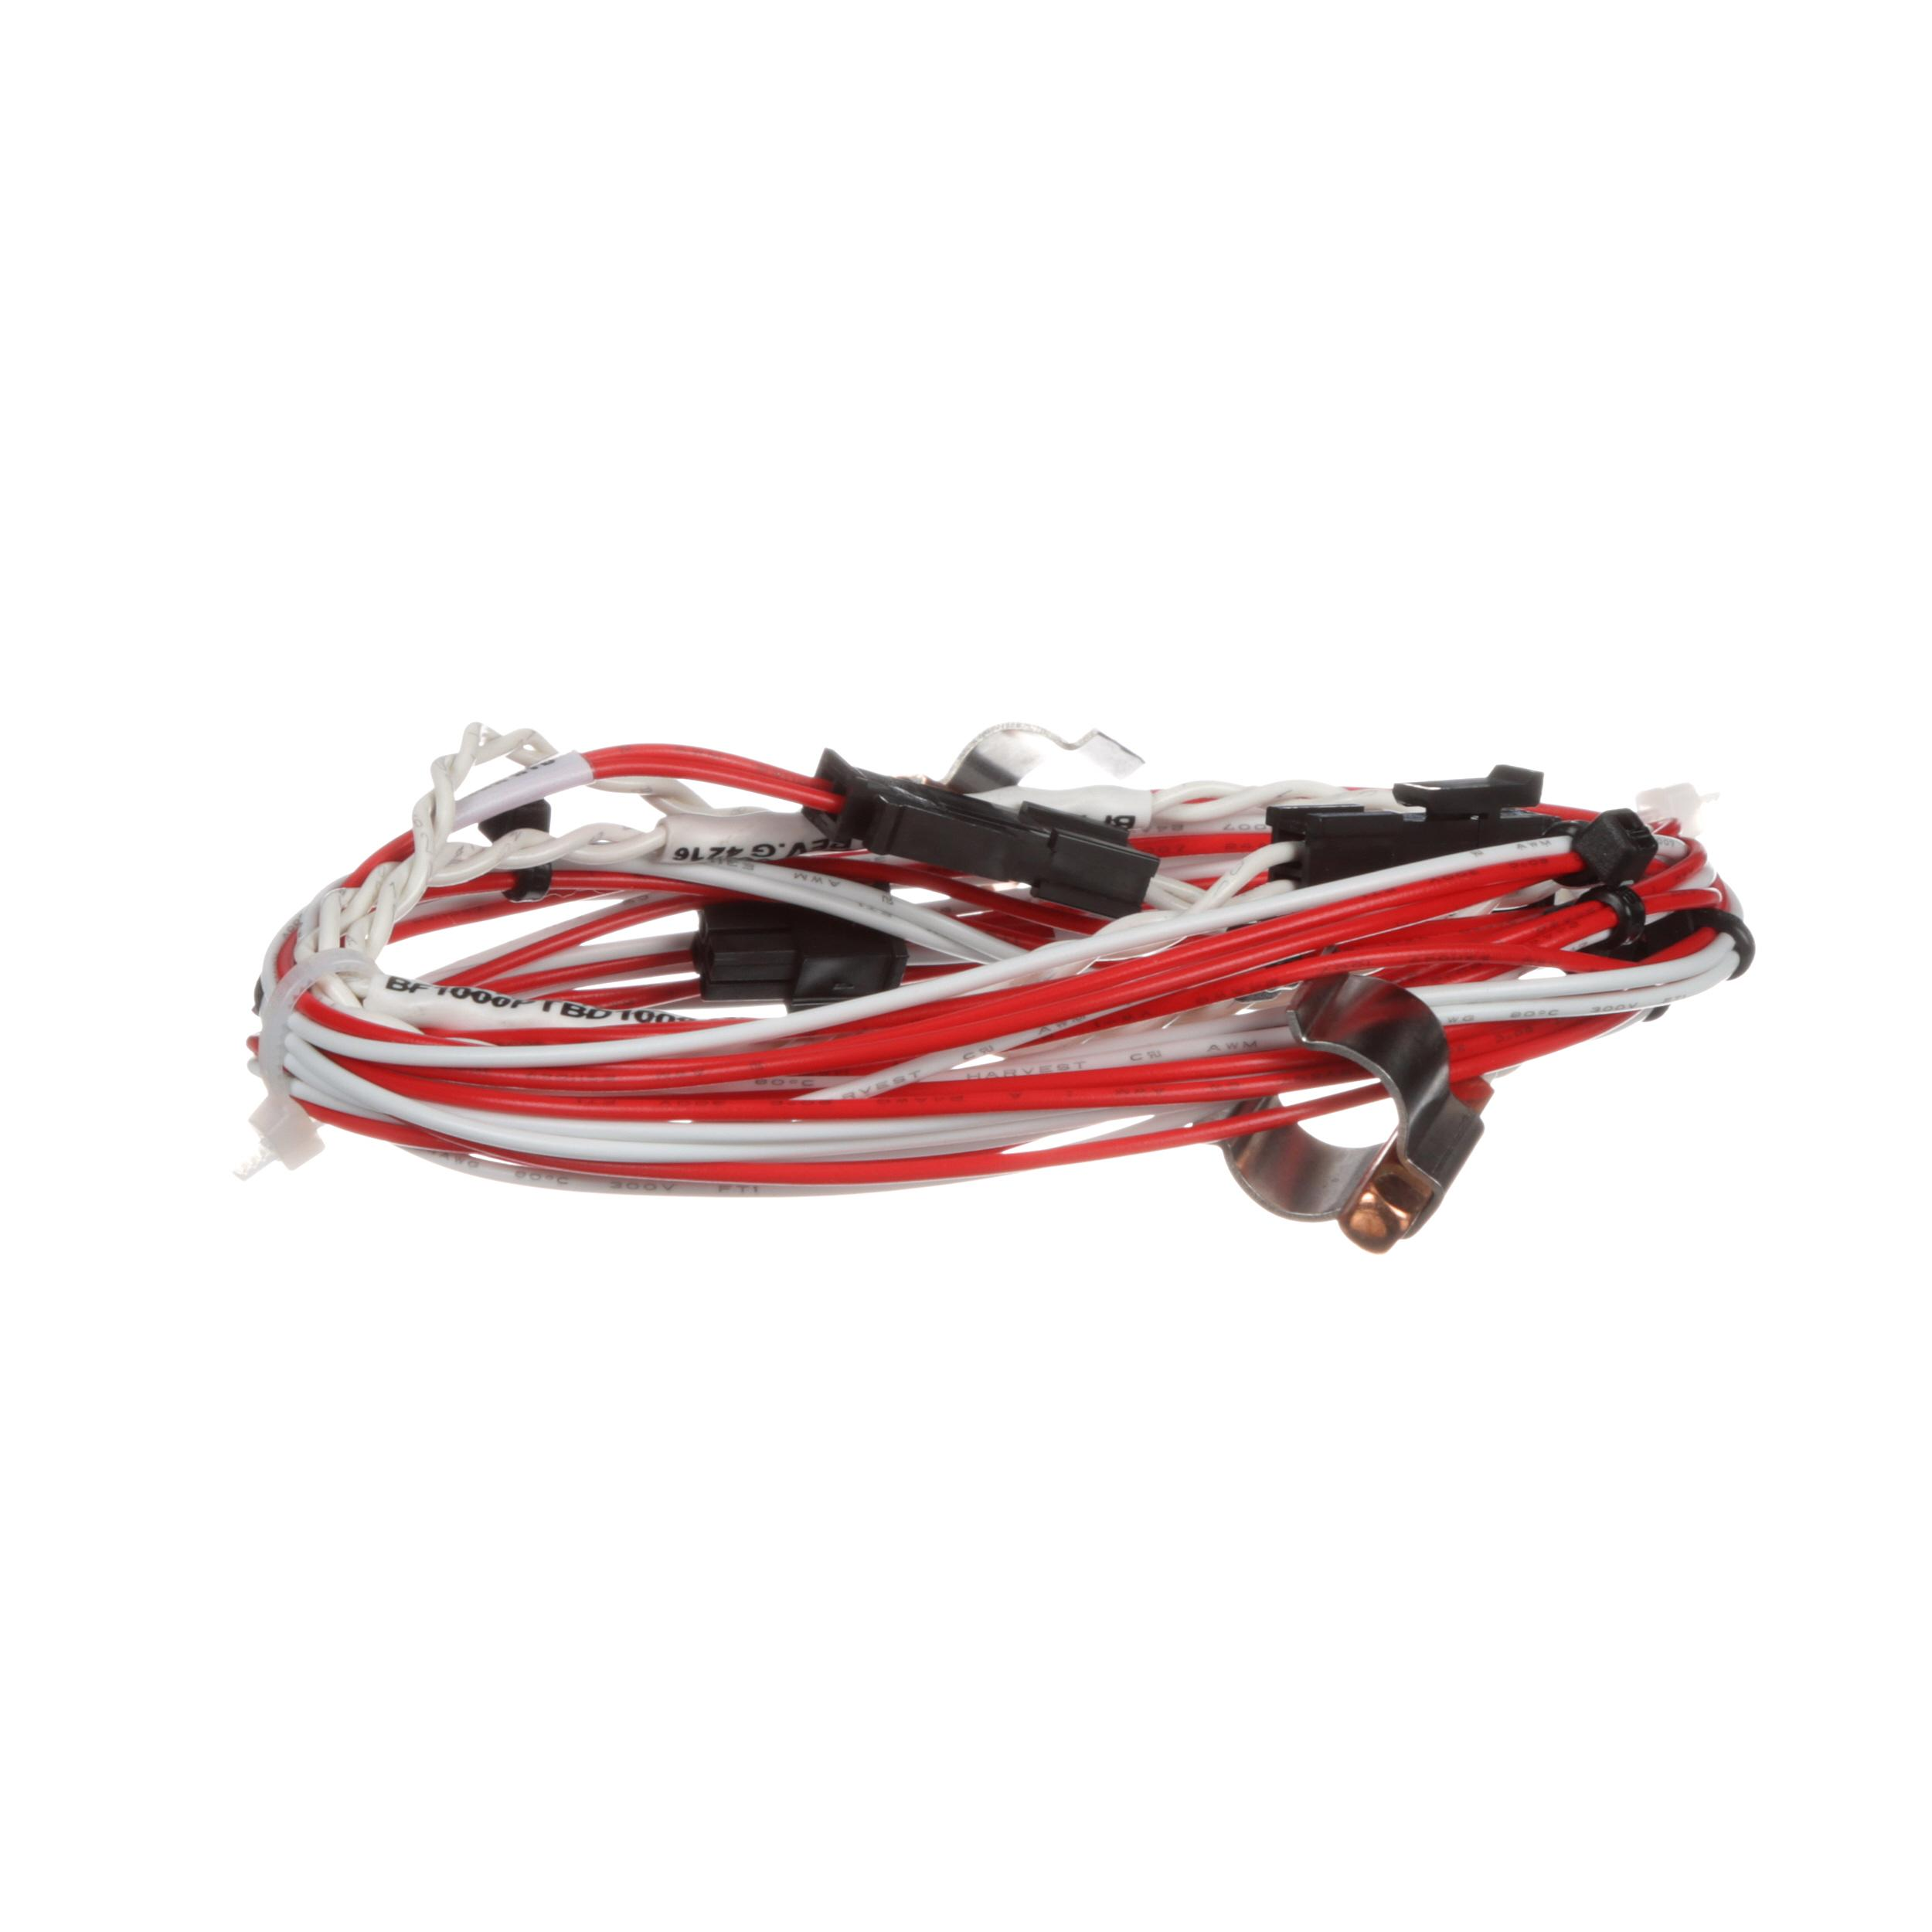 531106_R01_C10?w=300&h=300&img404=ImageComing&v=0&locale=en USen ** fbd wire harness and sensor part 12 2059 0001  at alyssarenee.co